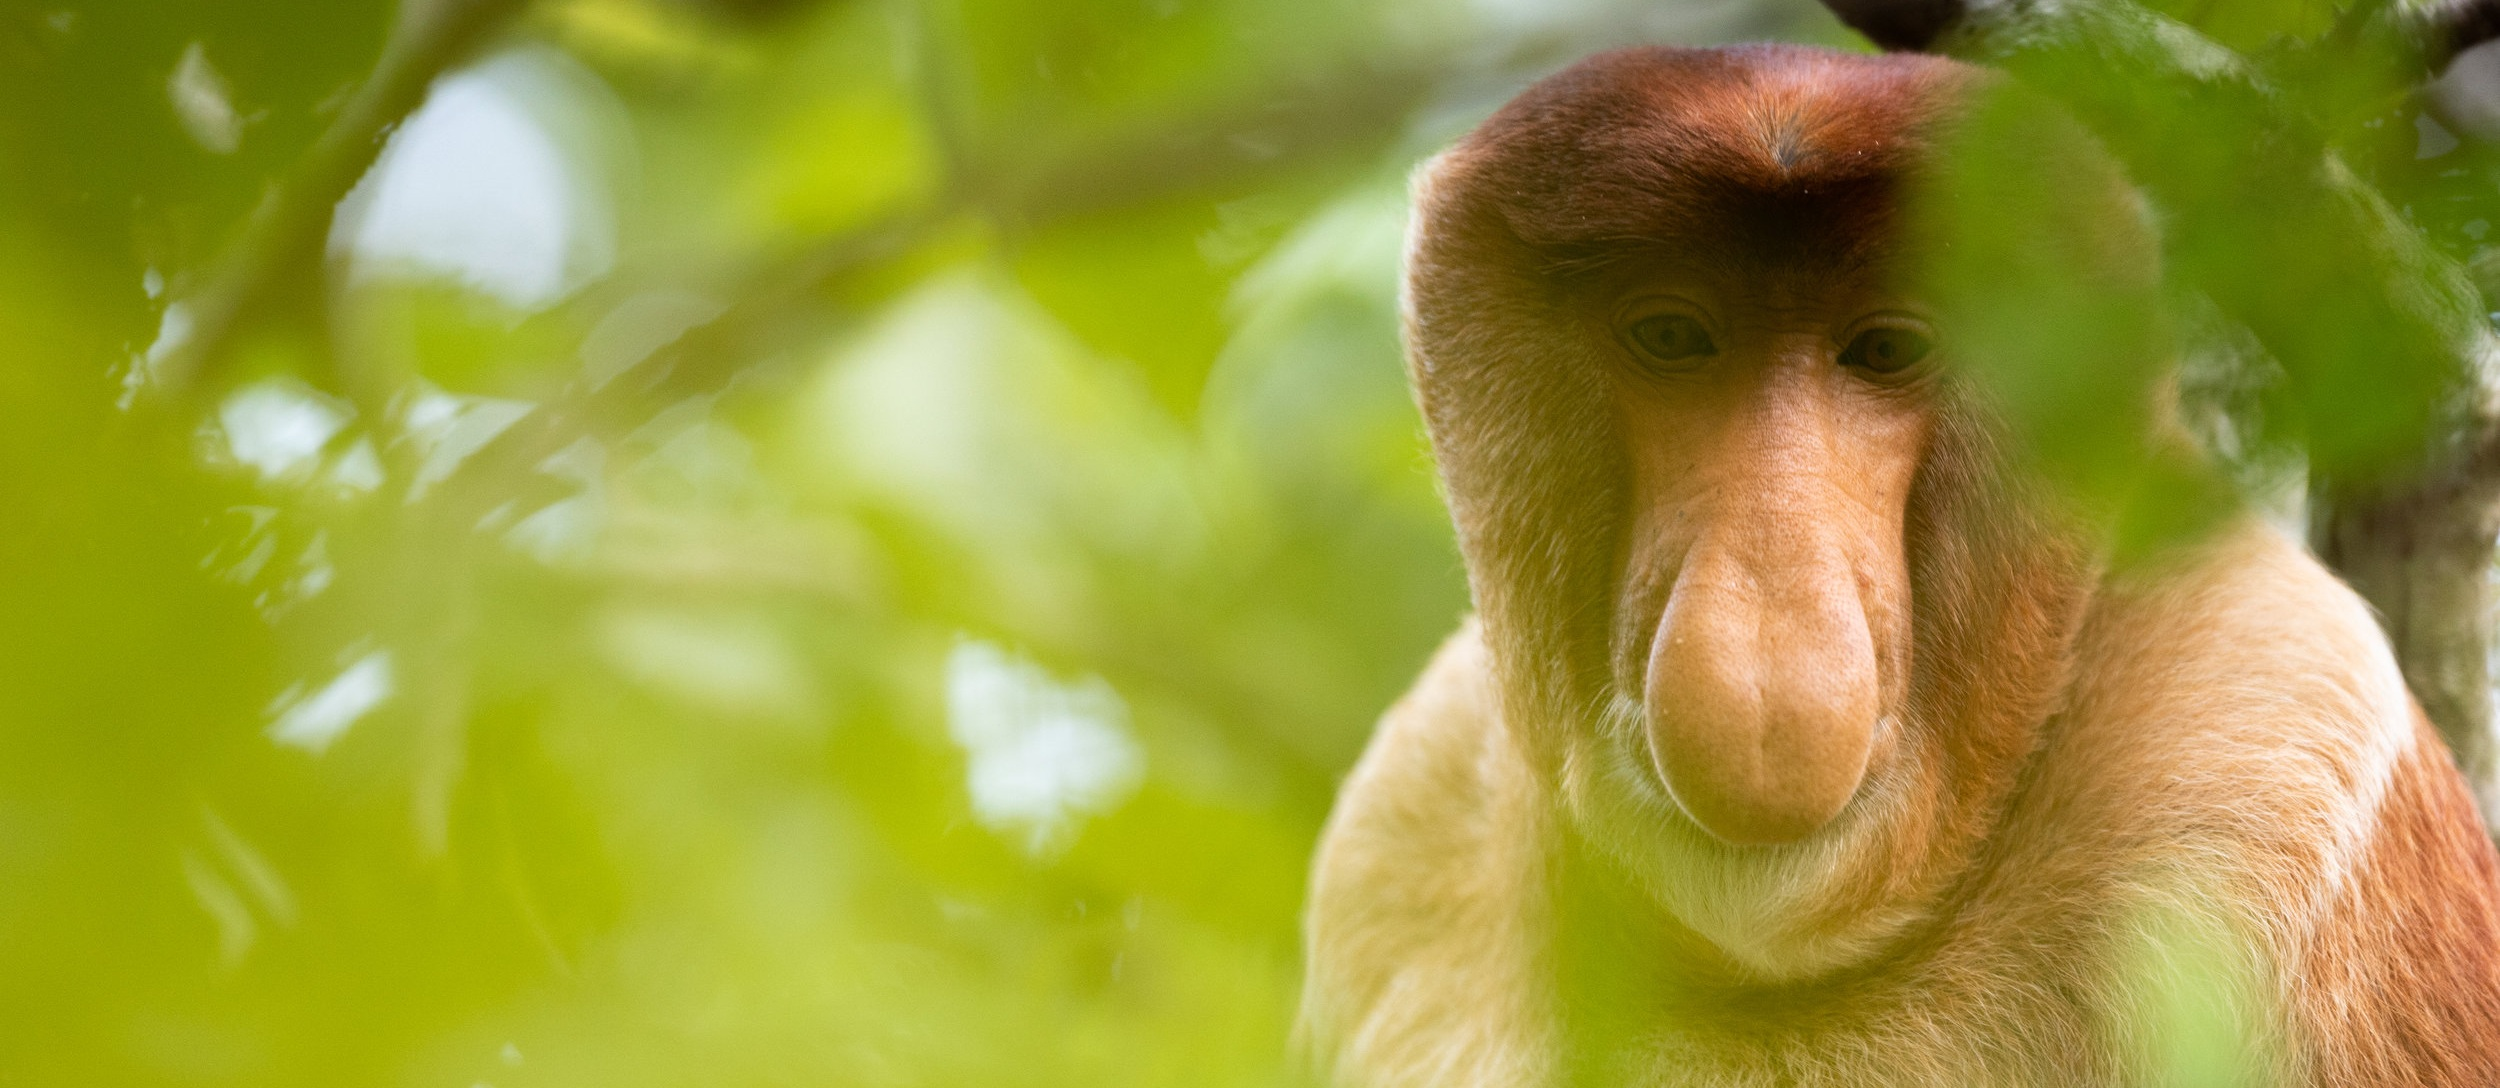 Proboscis monkey (Nasalis larvatus), or long-nosed monkey, close-up portrait in Bako National Park, Sarawak, Malaysia.